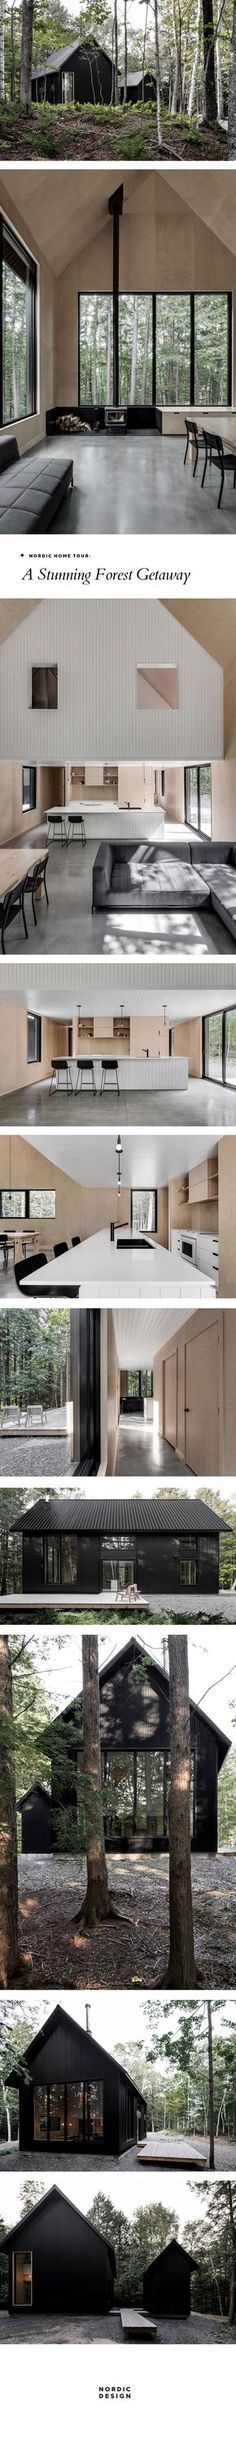 Nordic home tour: A Stunning forest getaway | NORDIC DESIGN